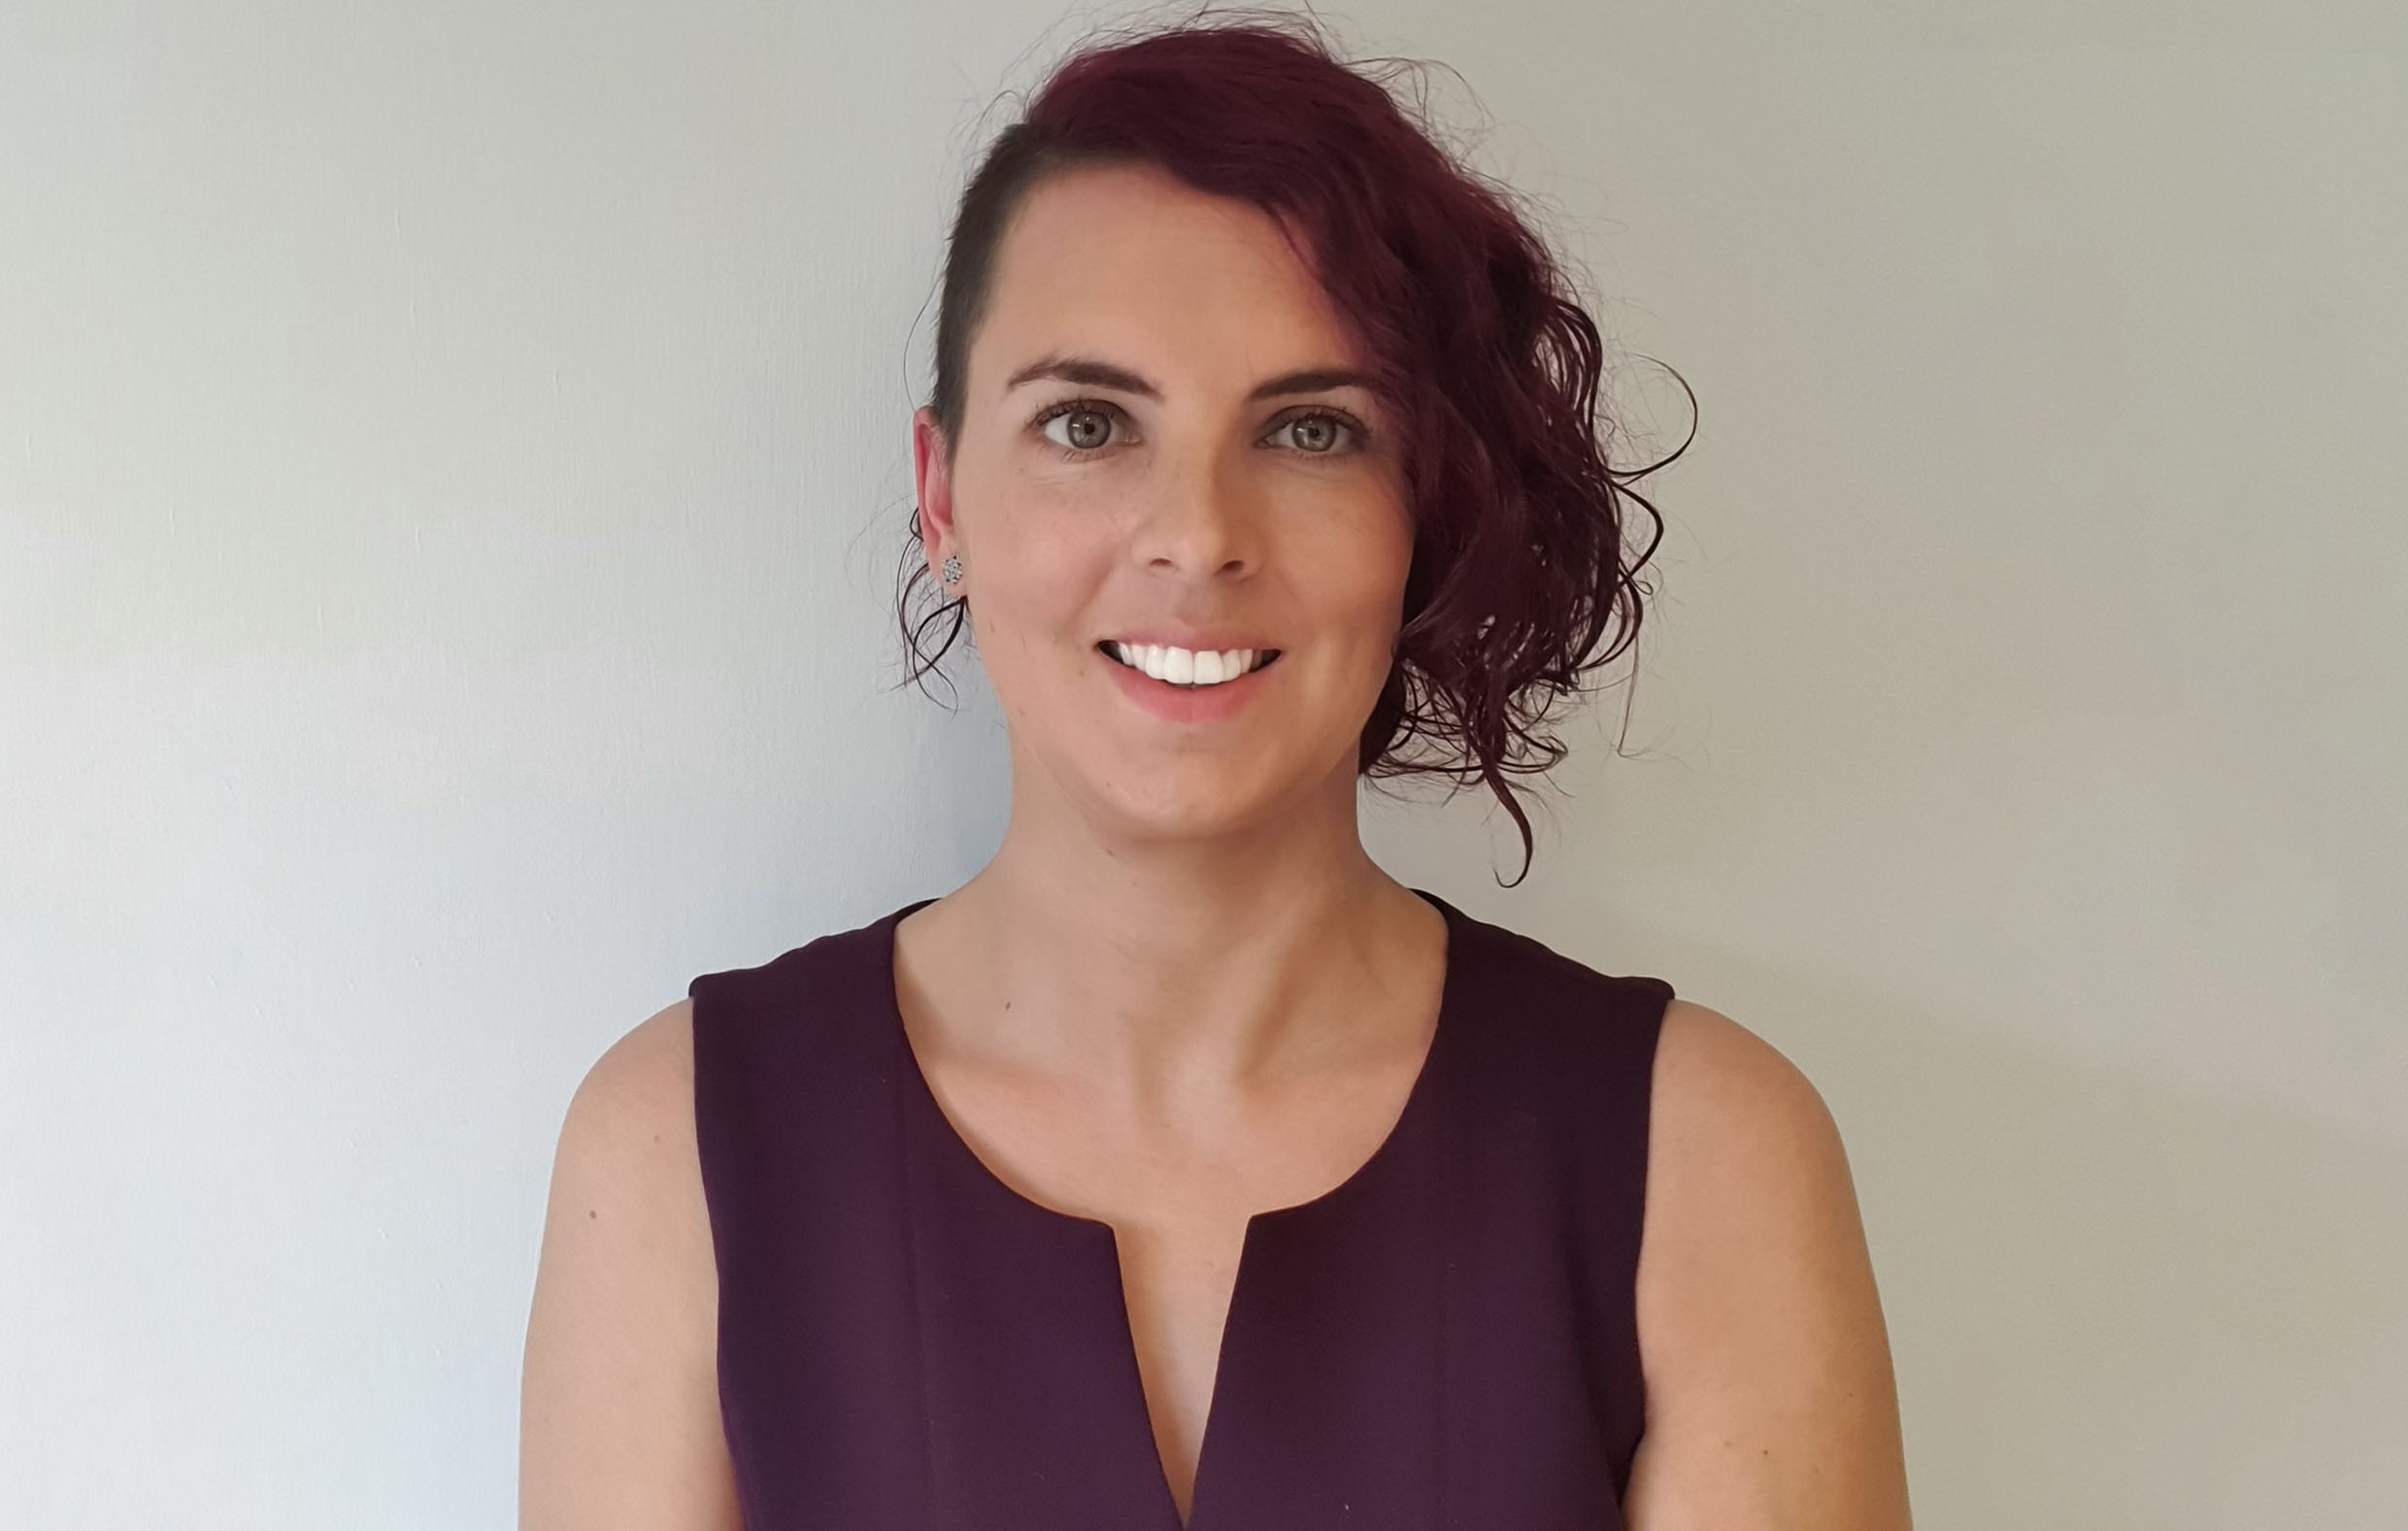 Masthaven Appoints Jenna Hill as Head of Customer Services and Planning